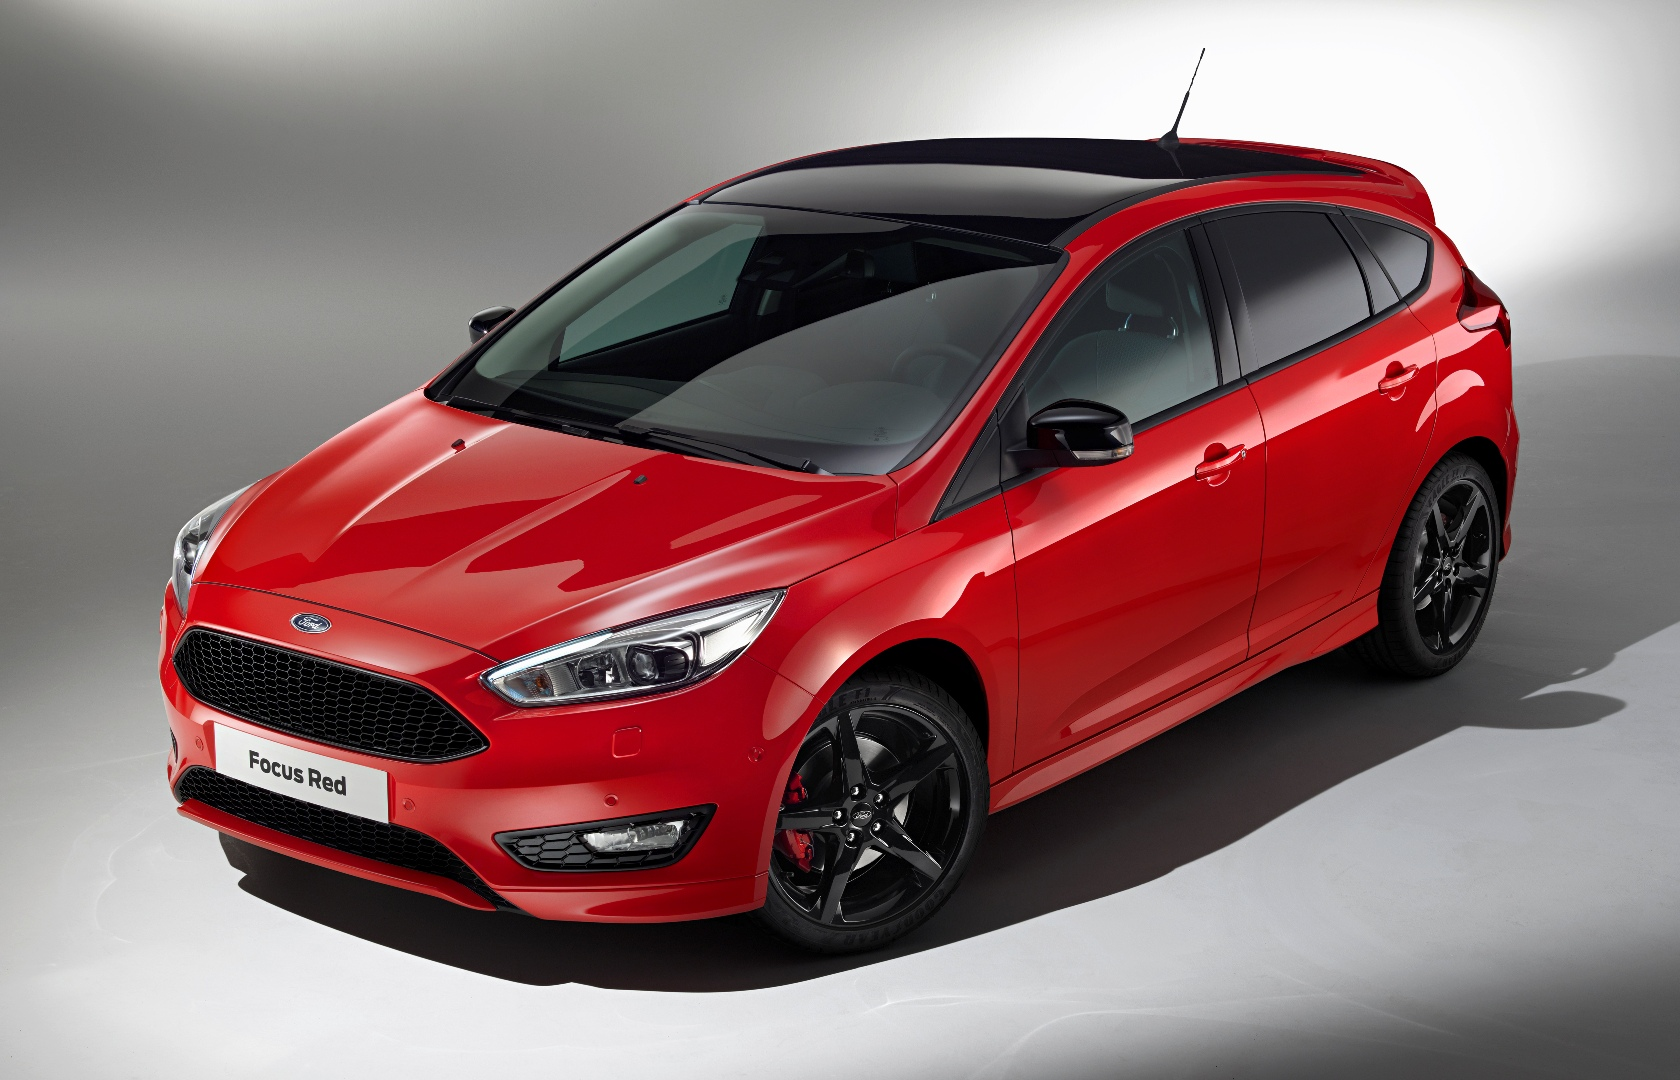 2016 ford focus zetec s red edition 182 hp wheels alive. Black Bedroom Furniture Sets. Home Design Ideas